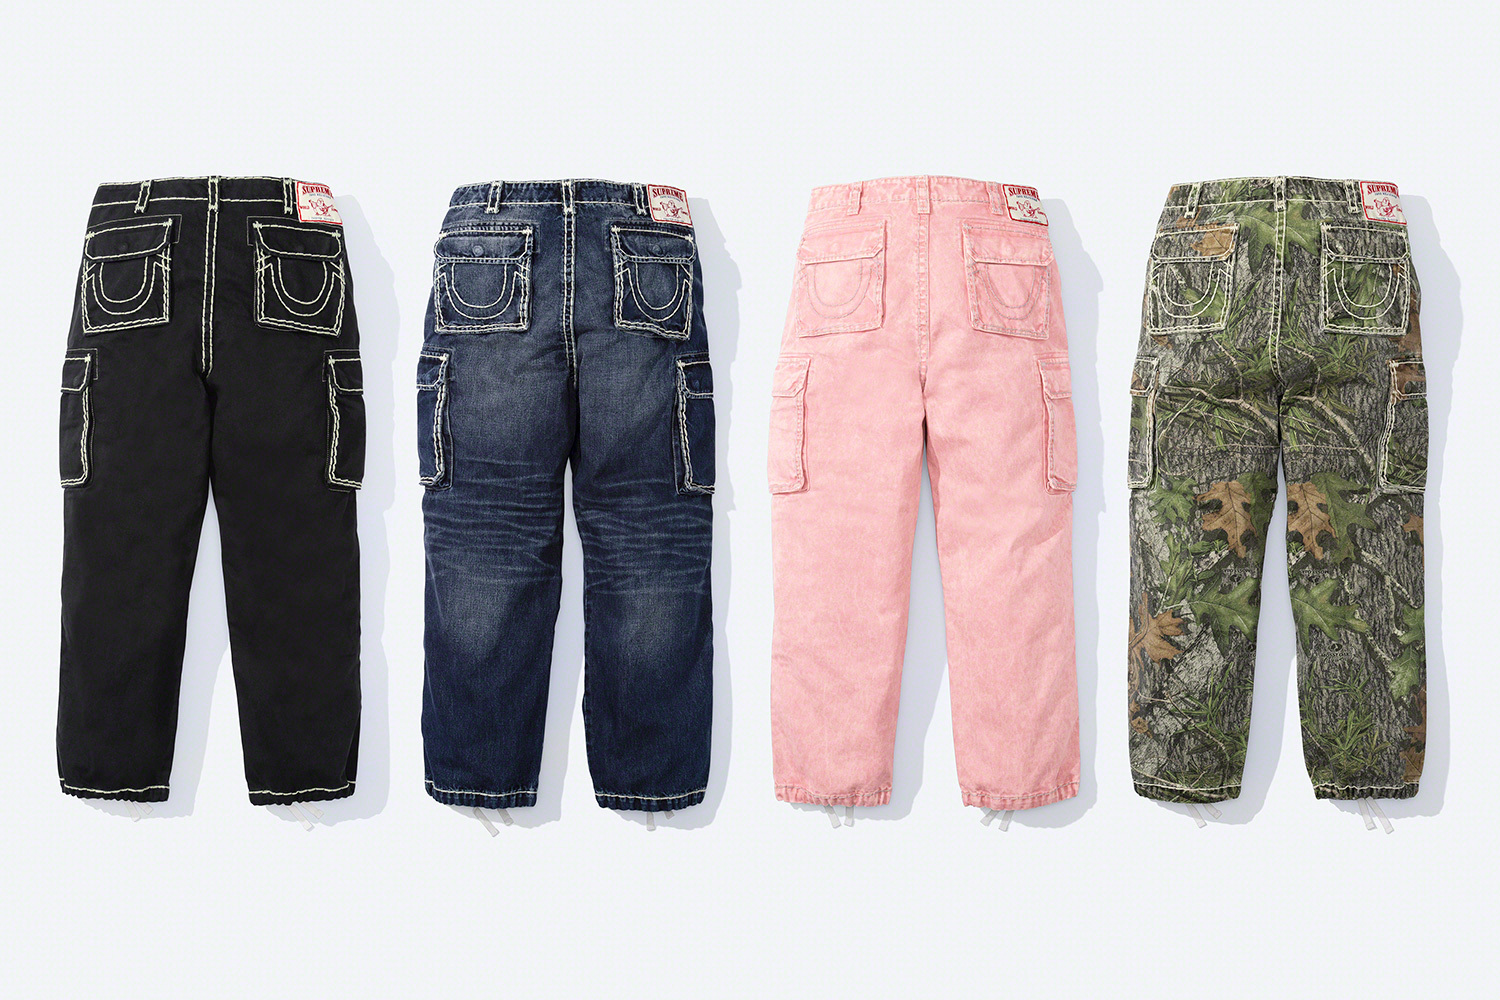 supreme-true-religion-brand-jeans-21aw-21fw-collaboration-release-20211002-week6